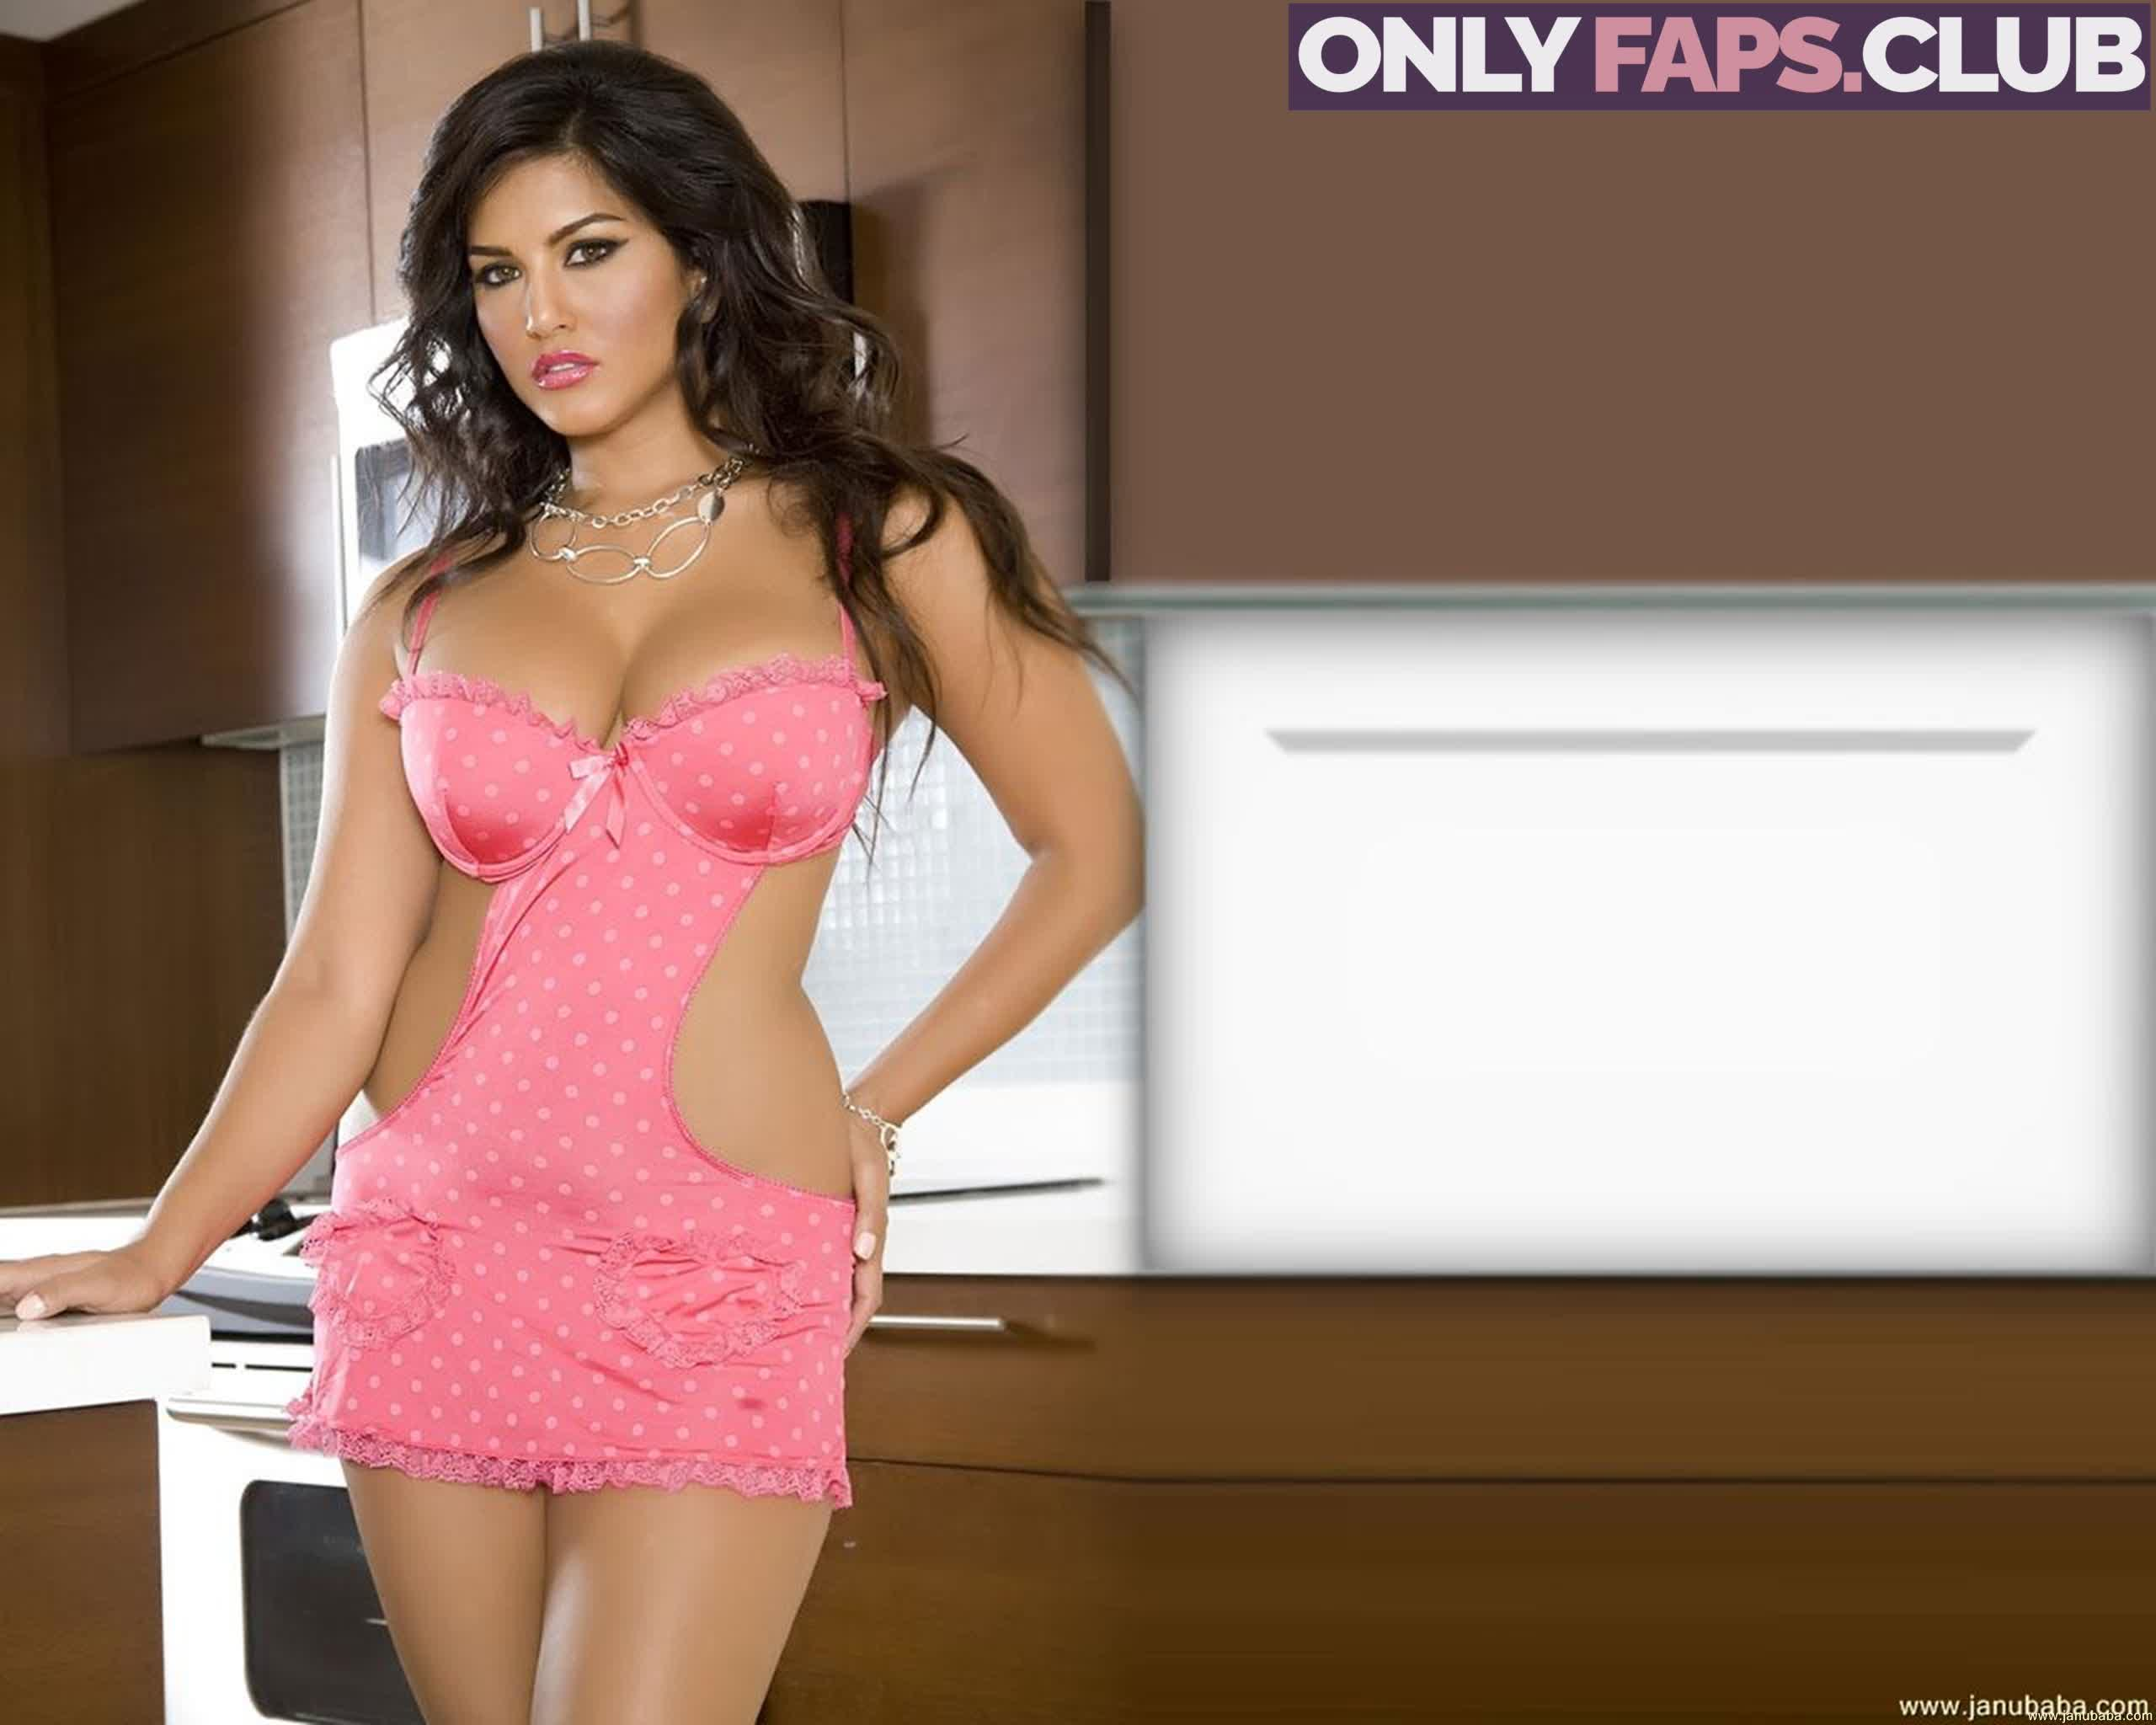 Sunny Leone OnlyFans Leaks (99 Photos)